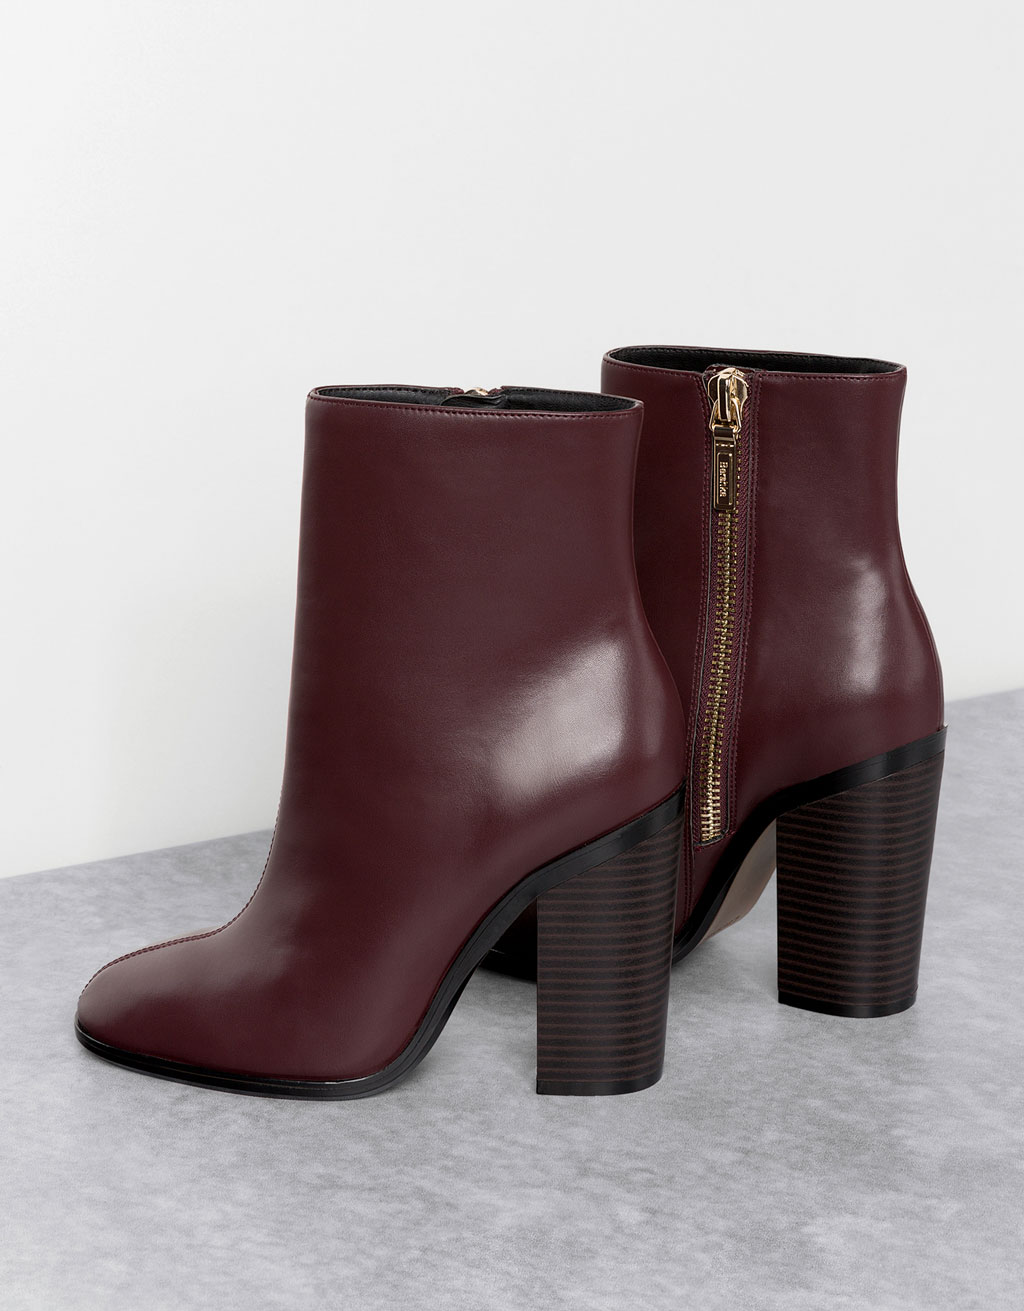 Heeled ankle boots with tall bootleg